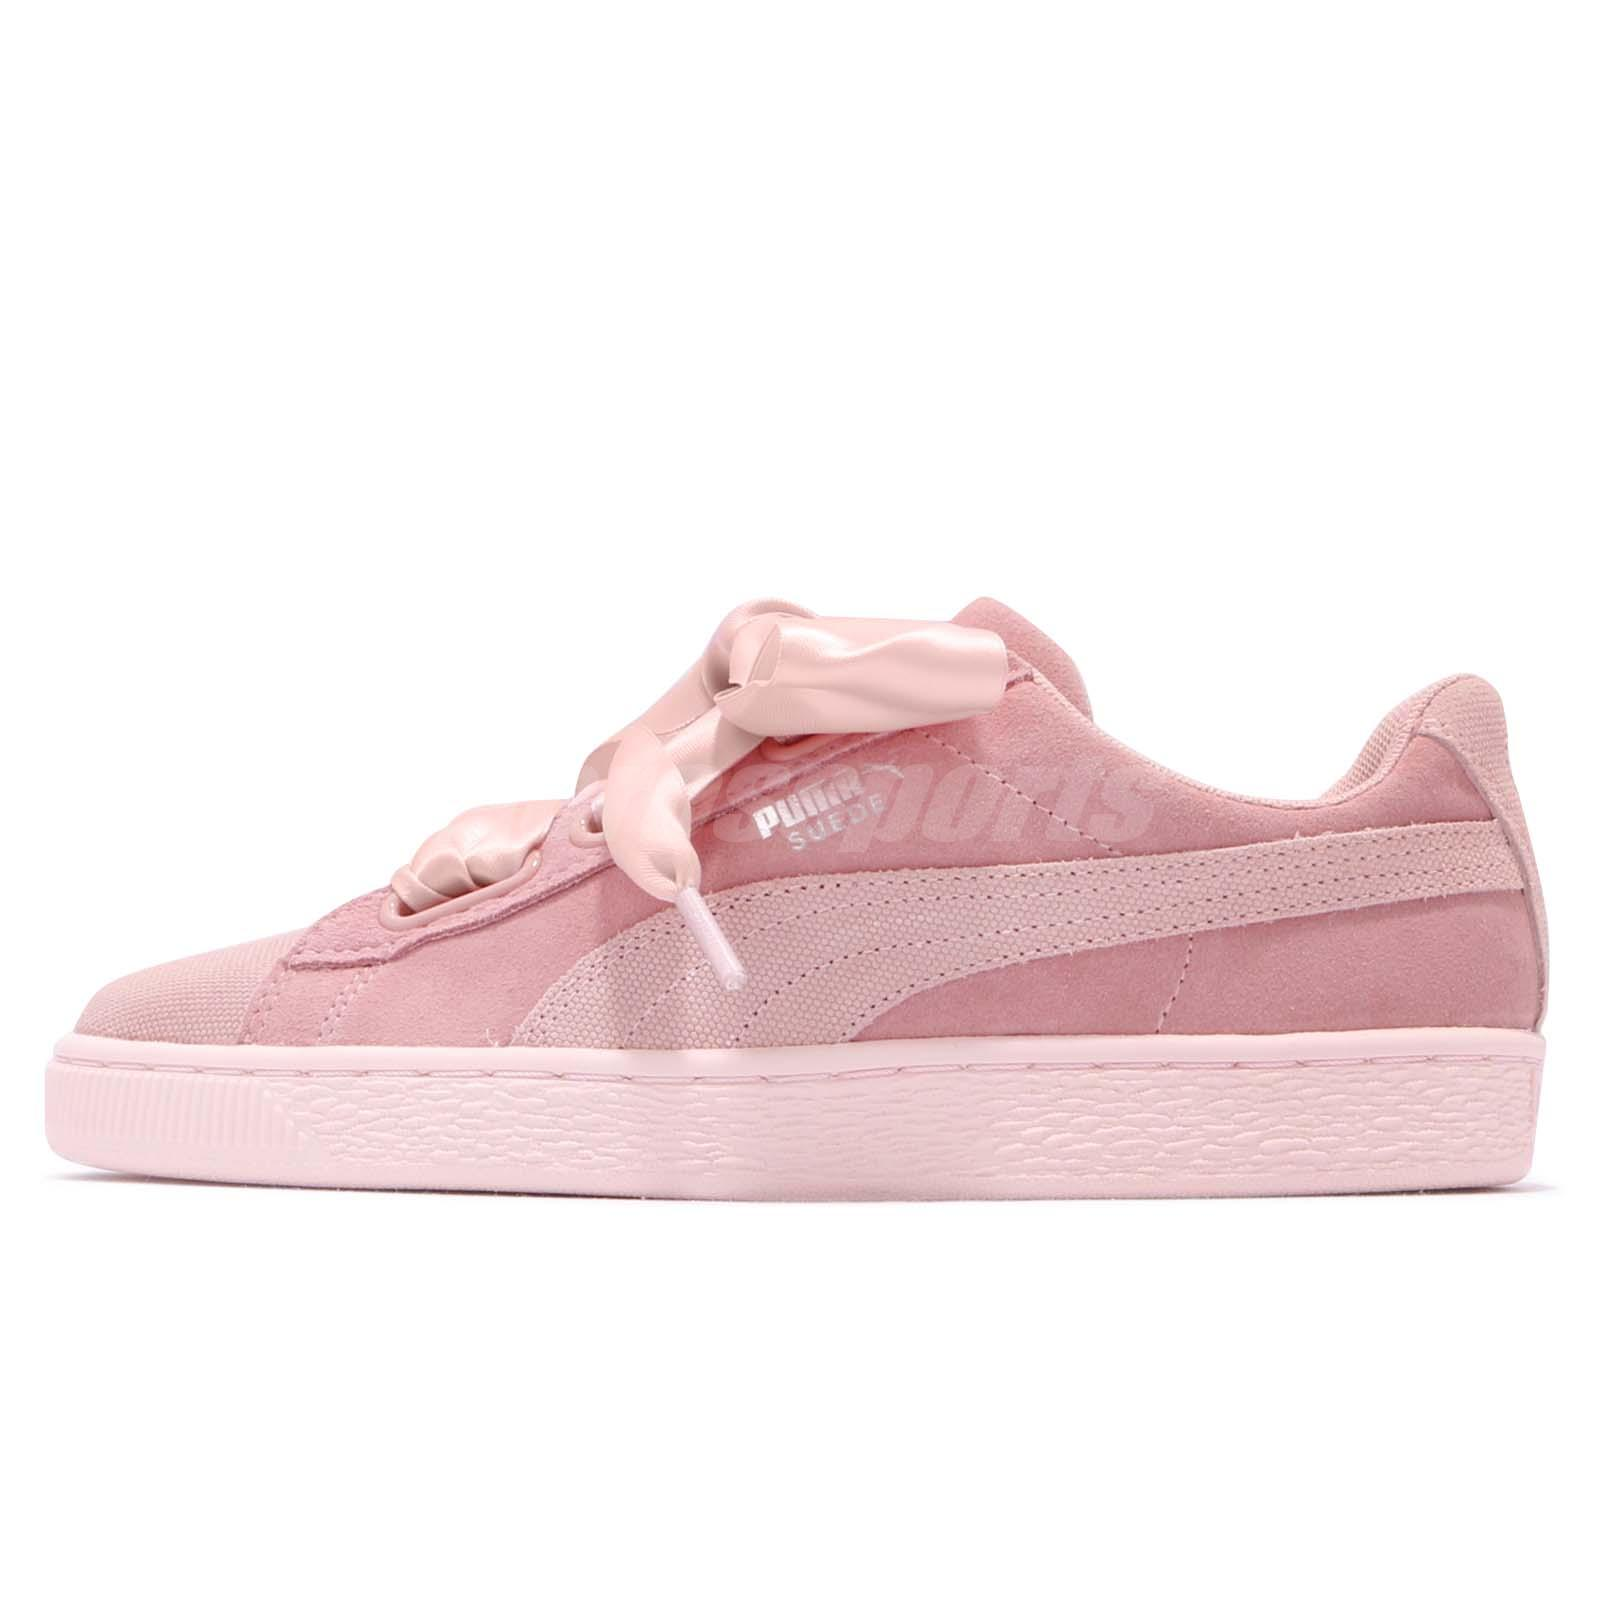 e055cea06e01 Puma Suede Heart Pebble Wns Peach Beige Pink Bow Women Shoes Sneakers  365210-01